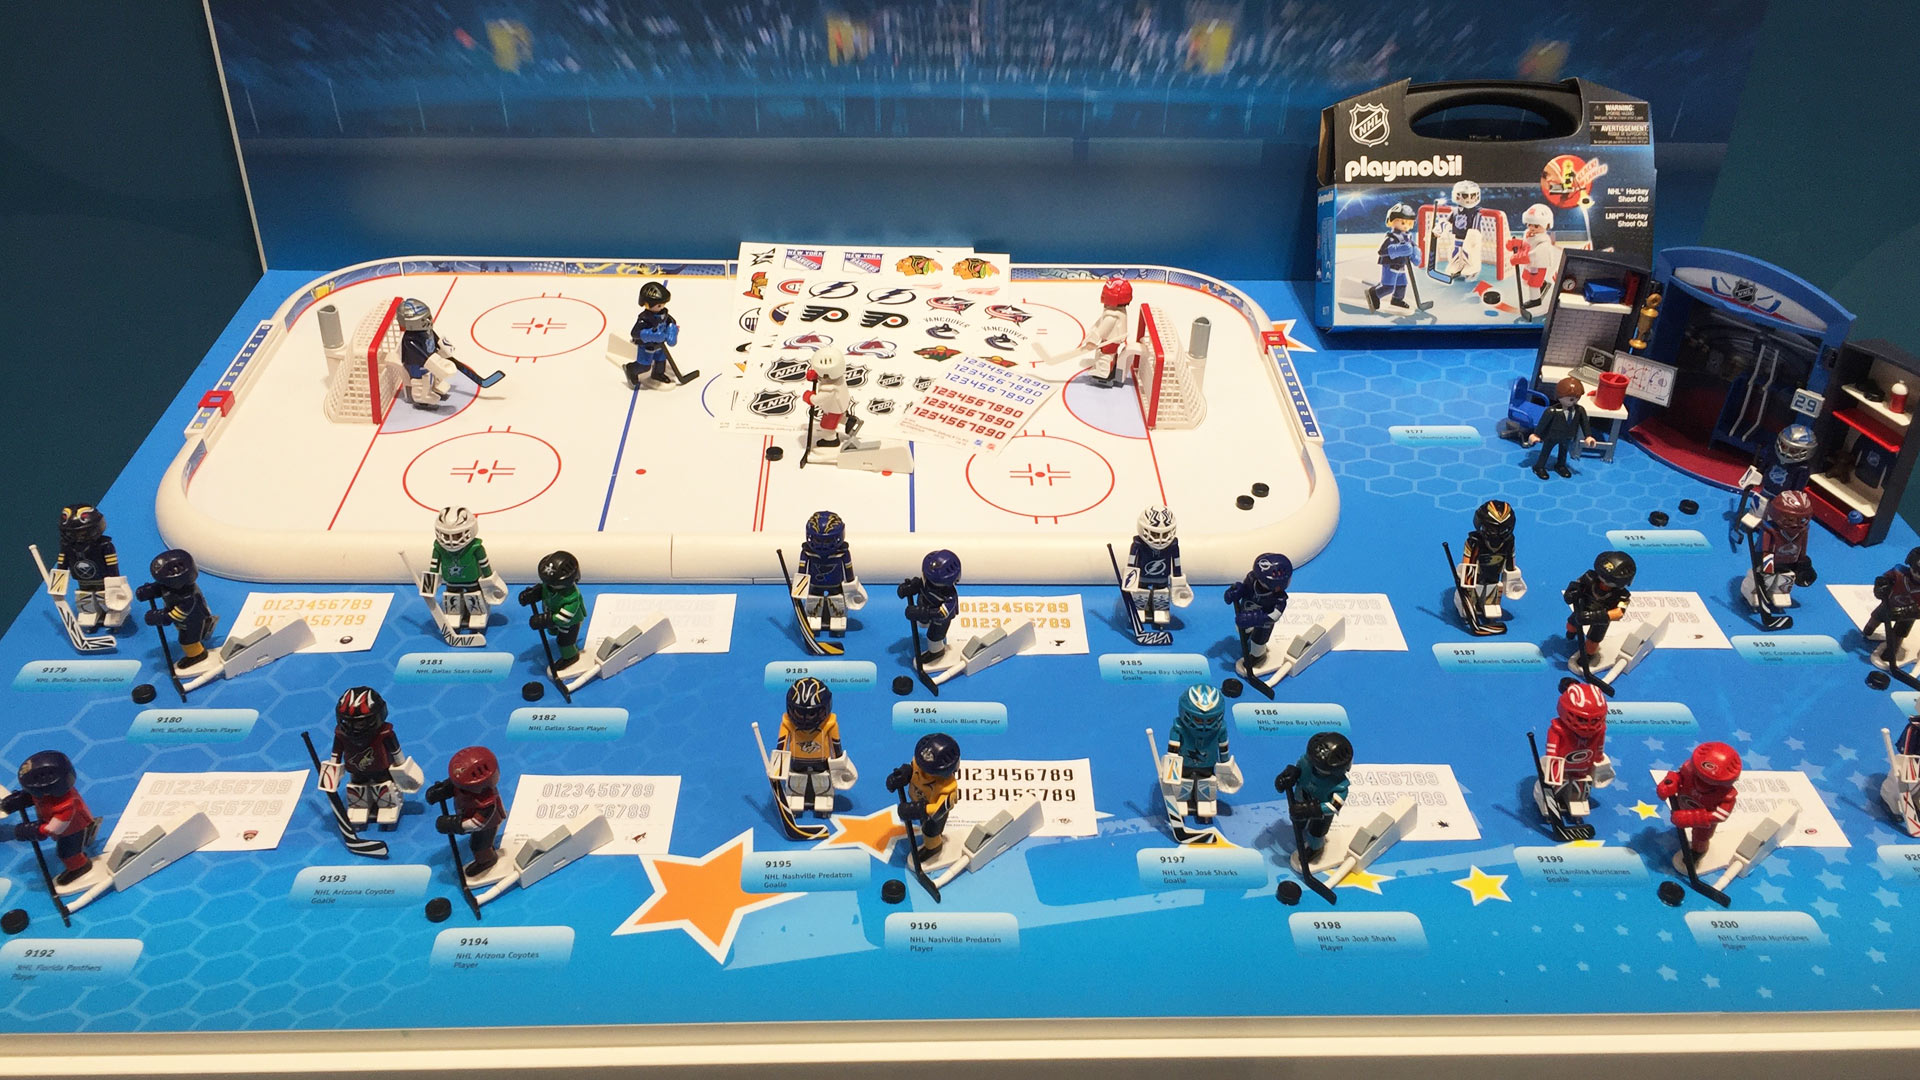 Playmobil Hockey NHL Set Skaters and Goalies at Toy Fair 2017